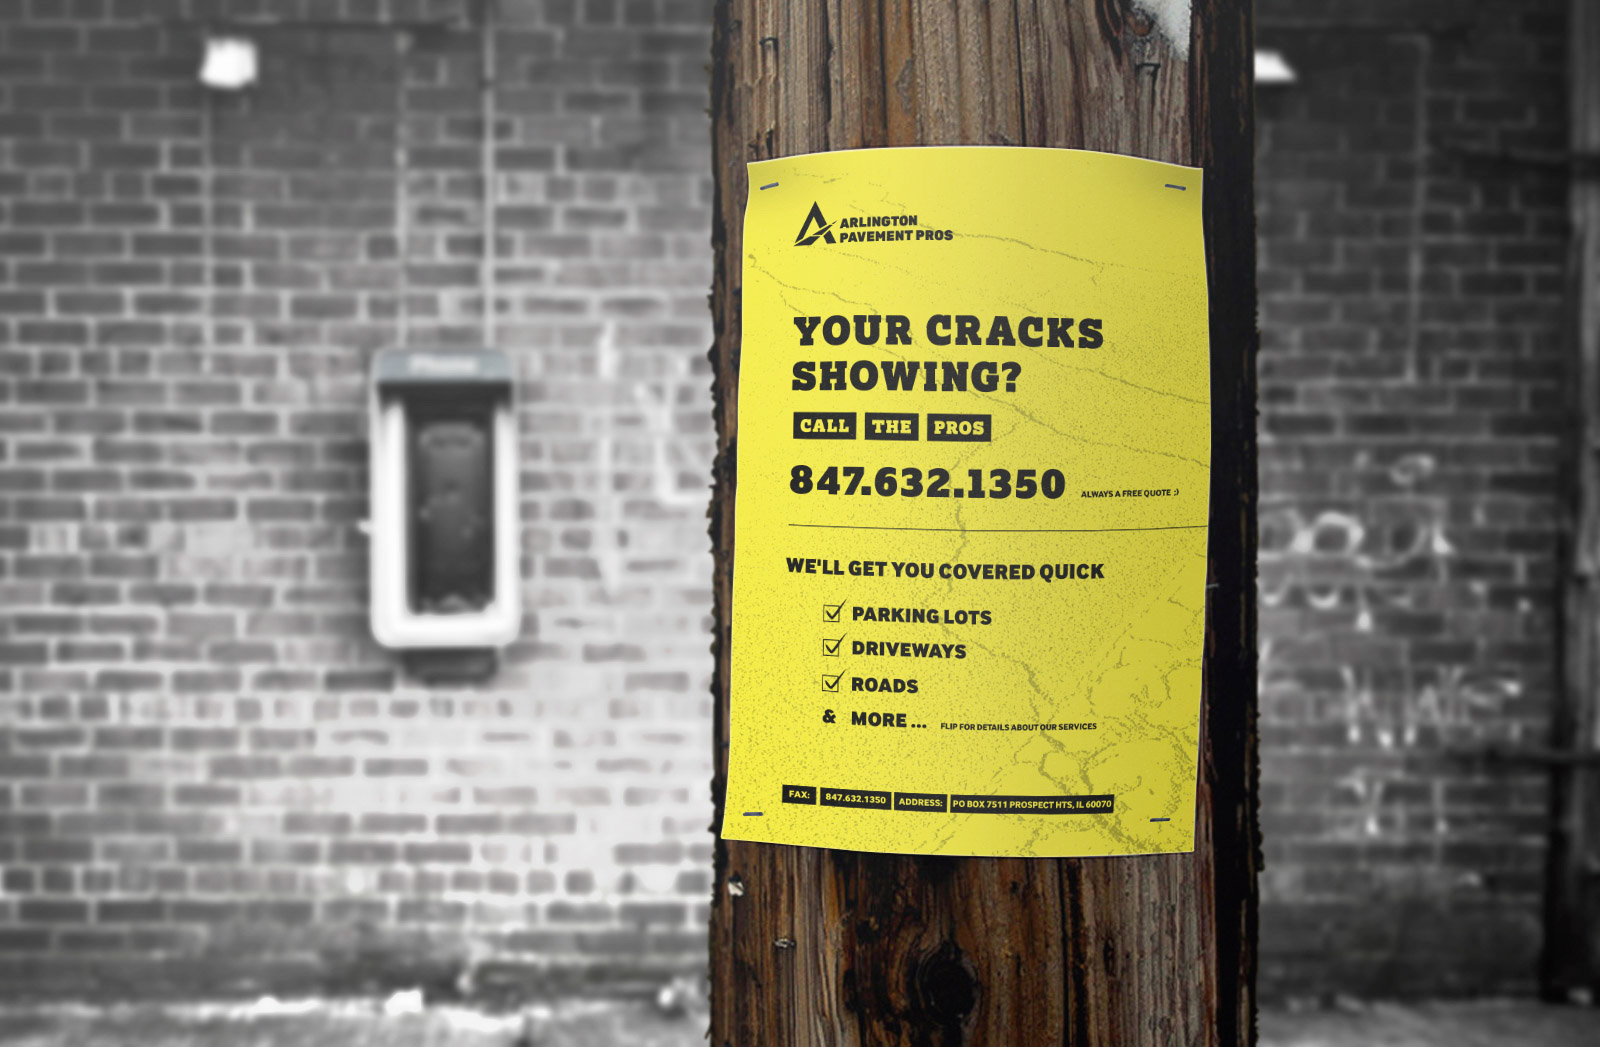 """This image Arlingon Pavement Pros (APP) flyer on a street post, which shows off their new visual identity and brand messaging. """"Your crack's showing? Call the pros."""""""